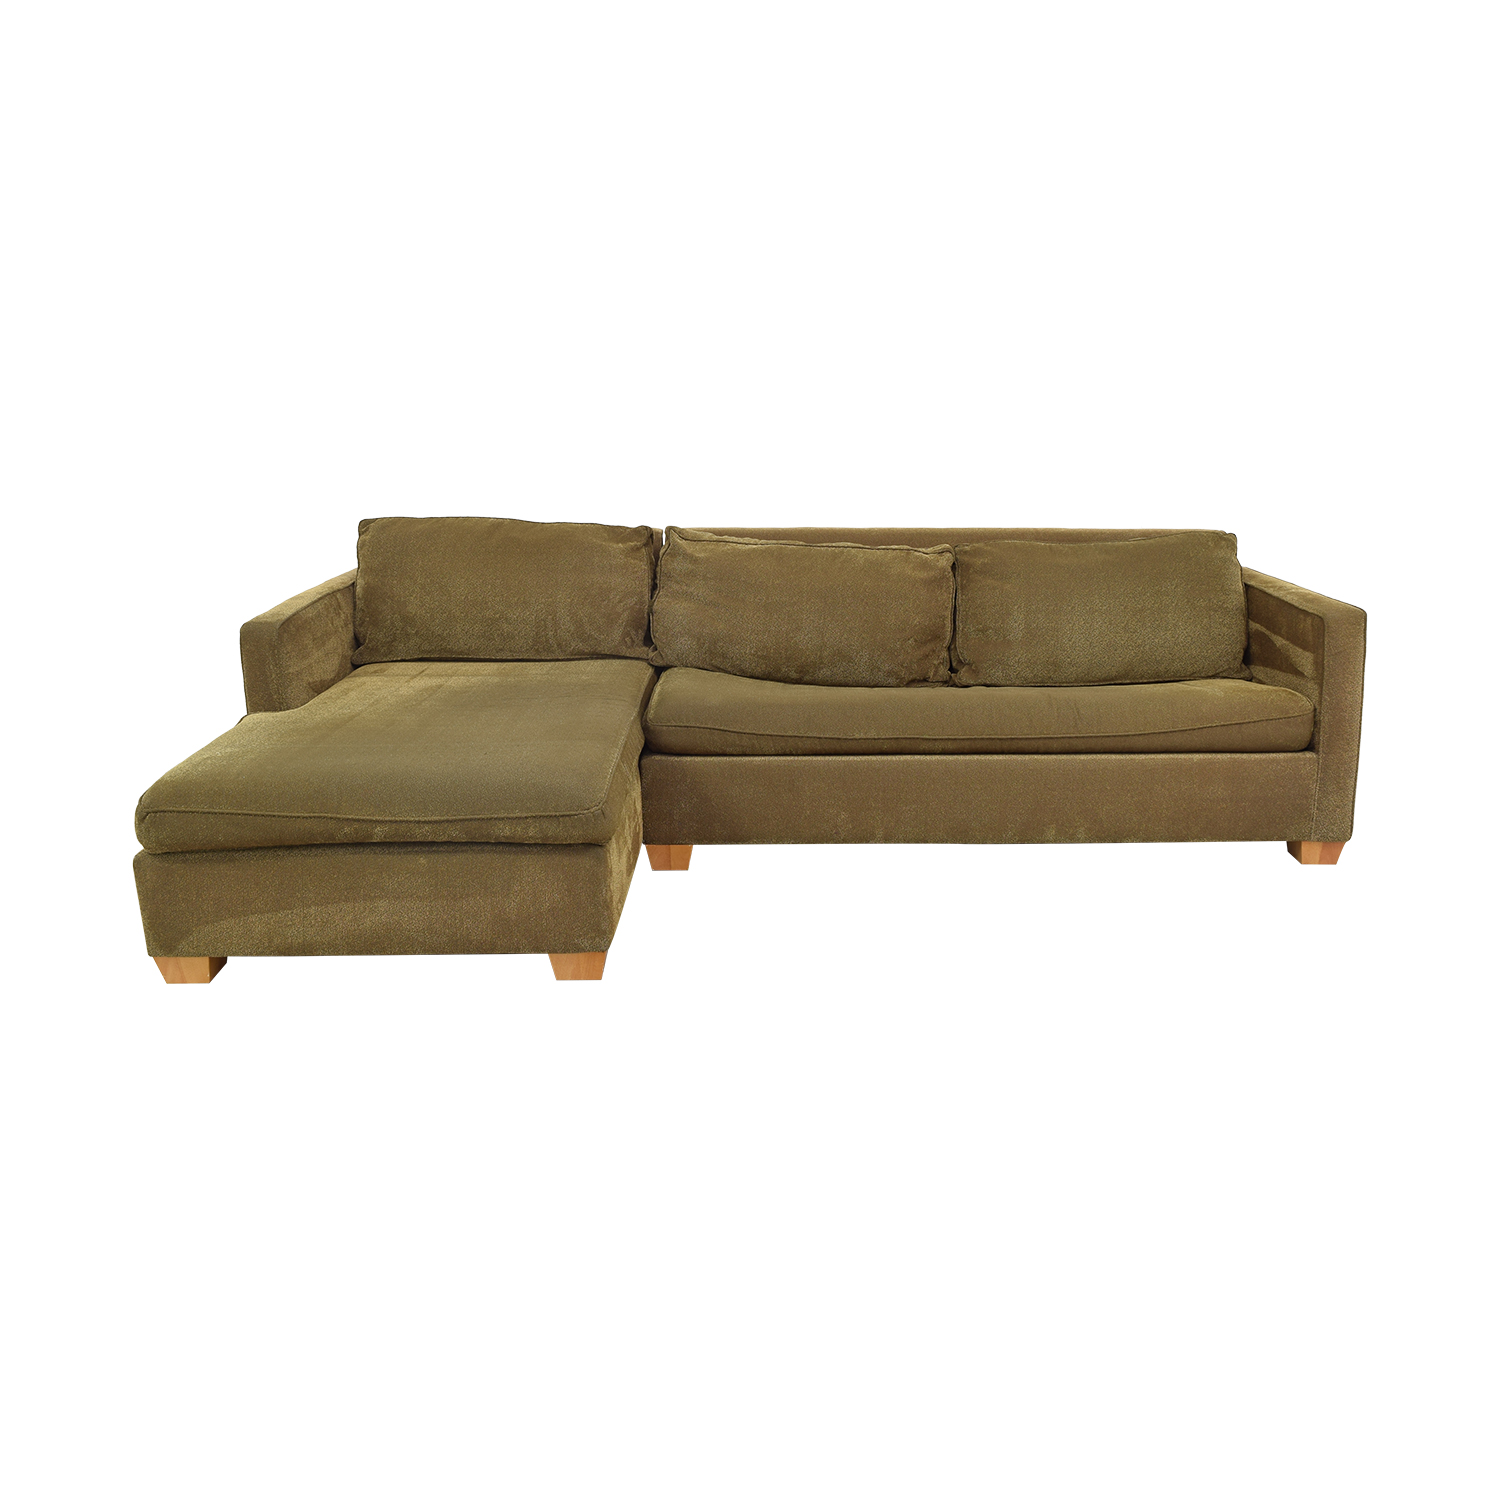 CalModa Sleeper Sofa with Chaise CalModa